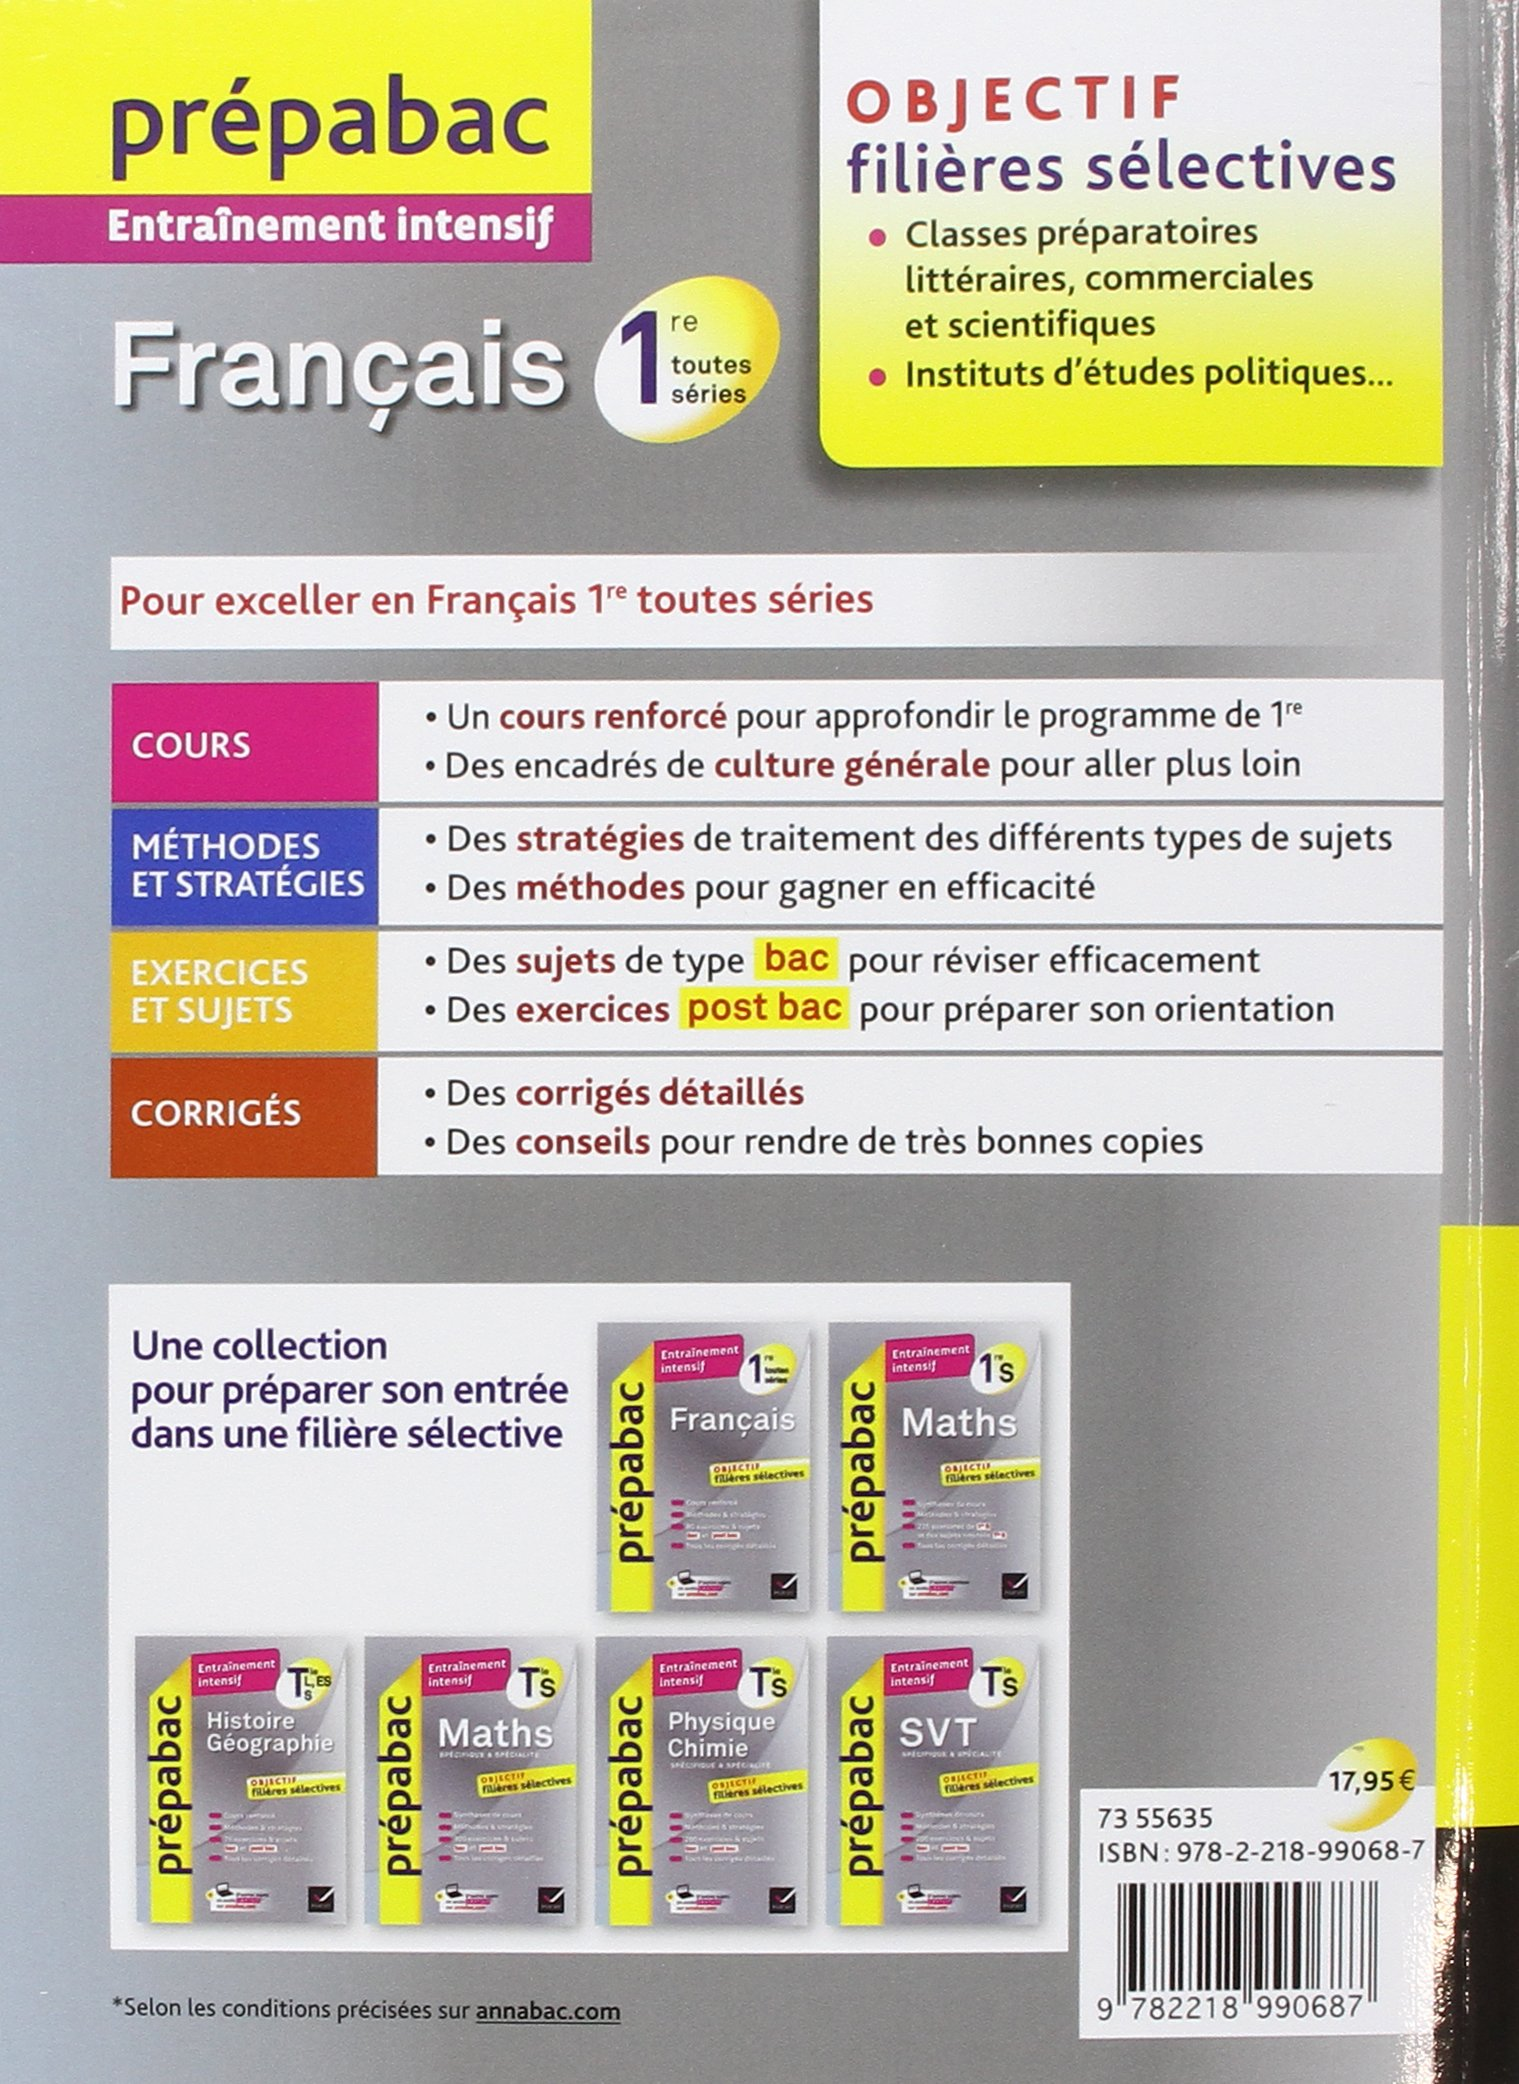 Prepabac Entrainement Intensif: 1re - Francais - (Toutes Series) (French Edition): 9782218990687: Amazon.com: Books